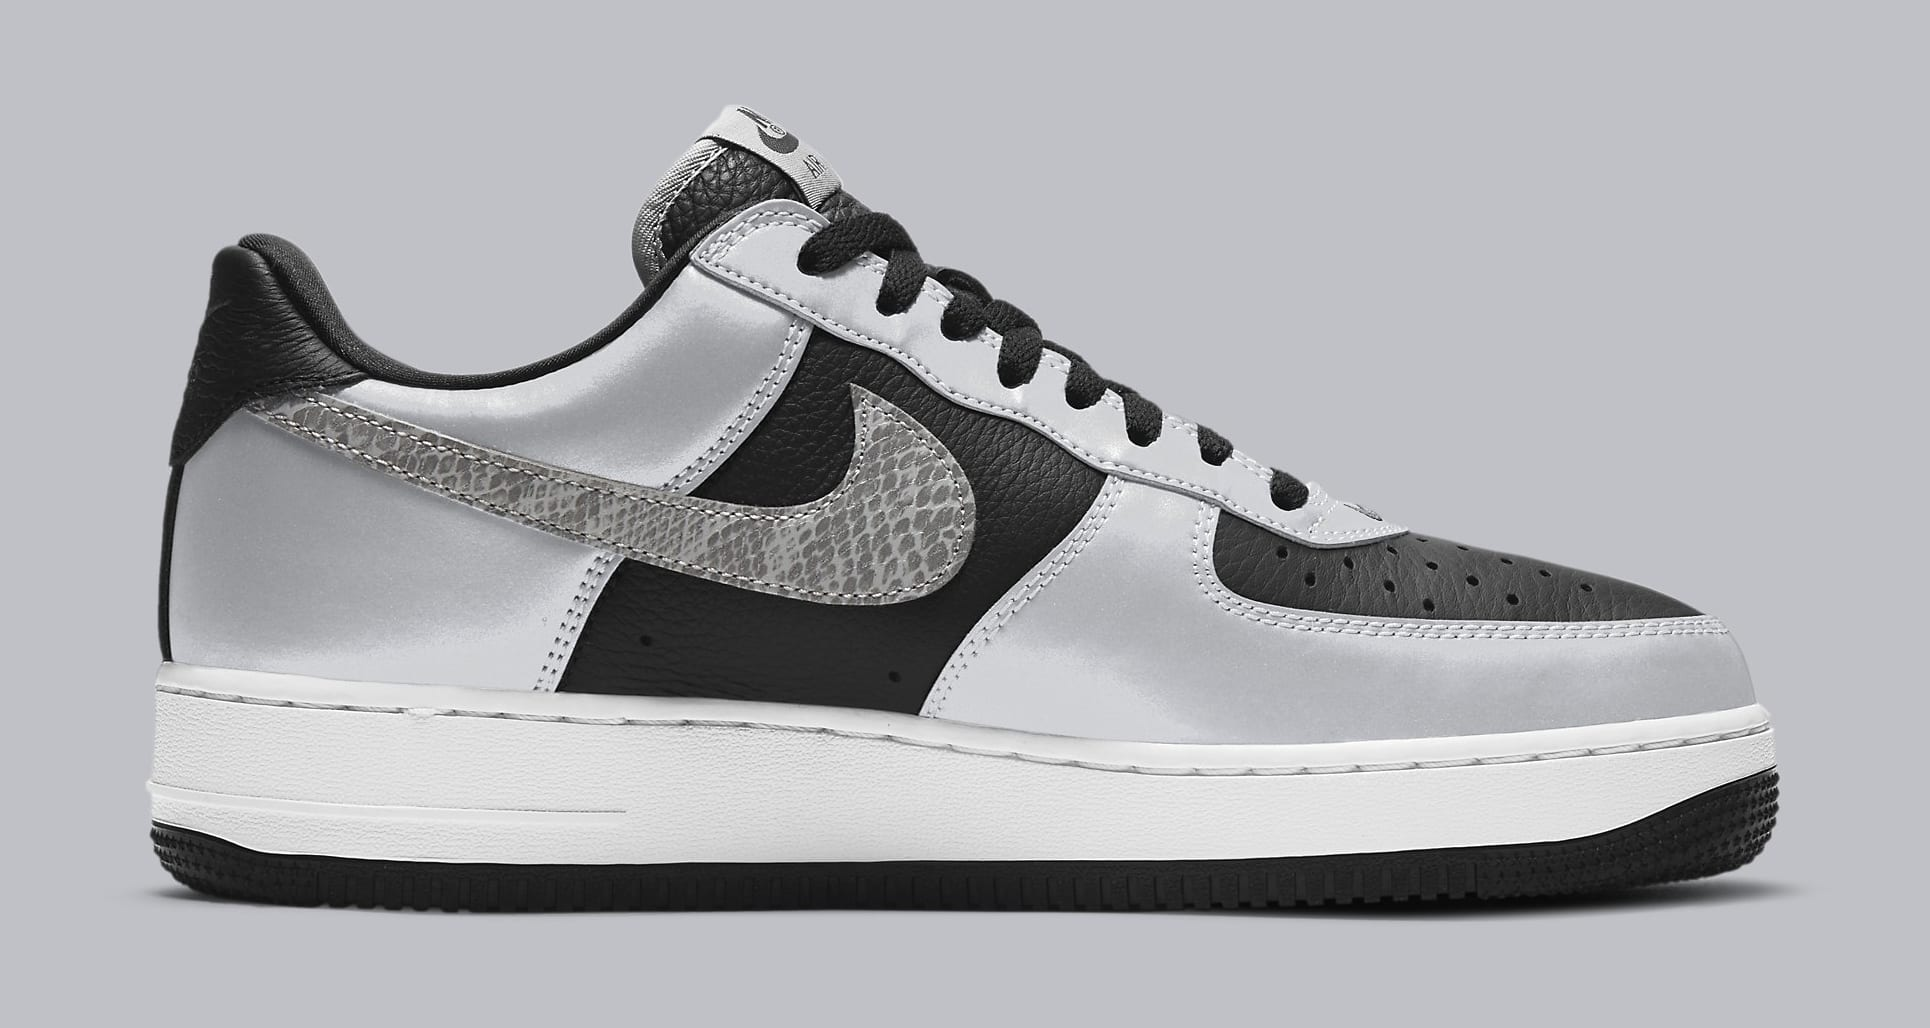 Nike Air Force 1 Low '3M Snake' DJ6033-001 Medial